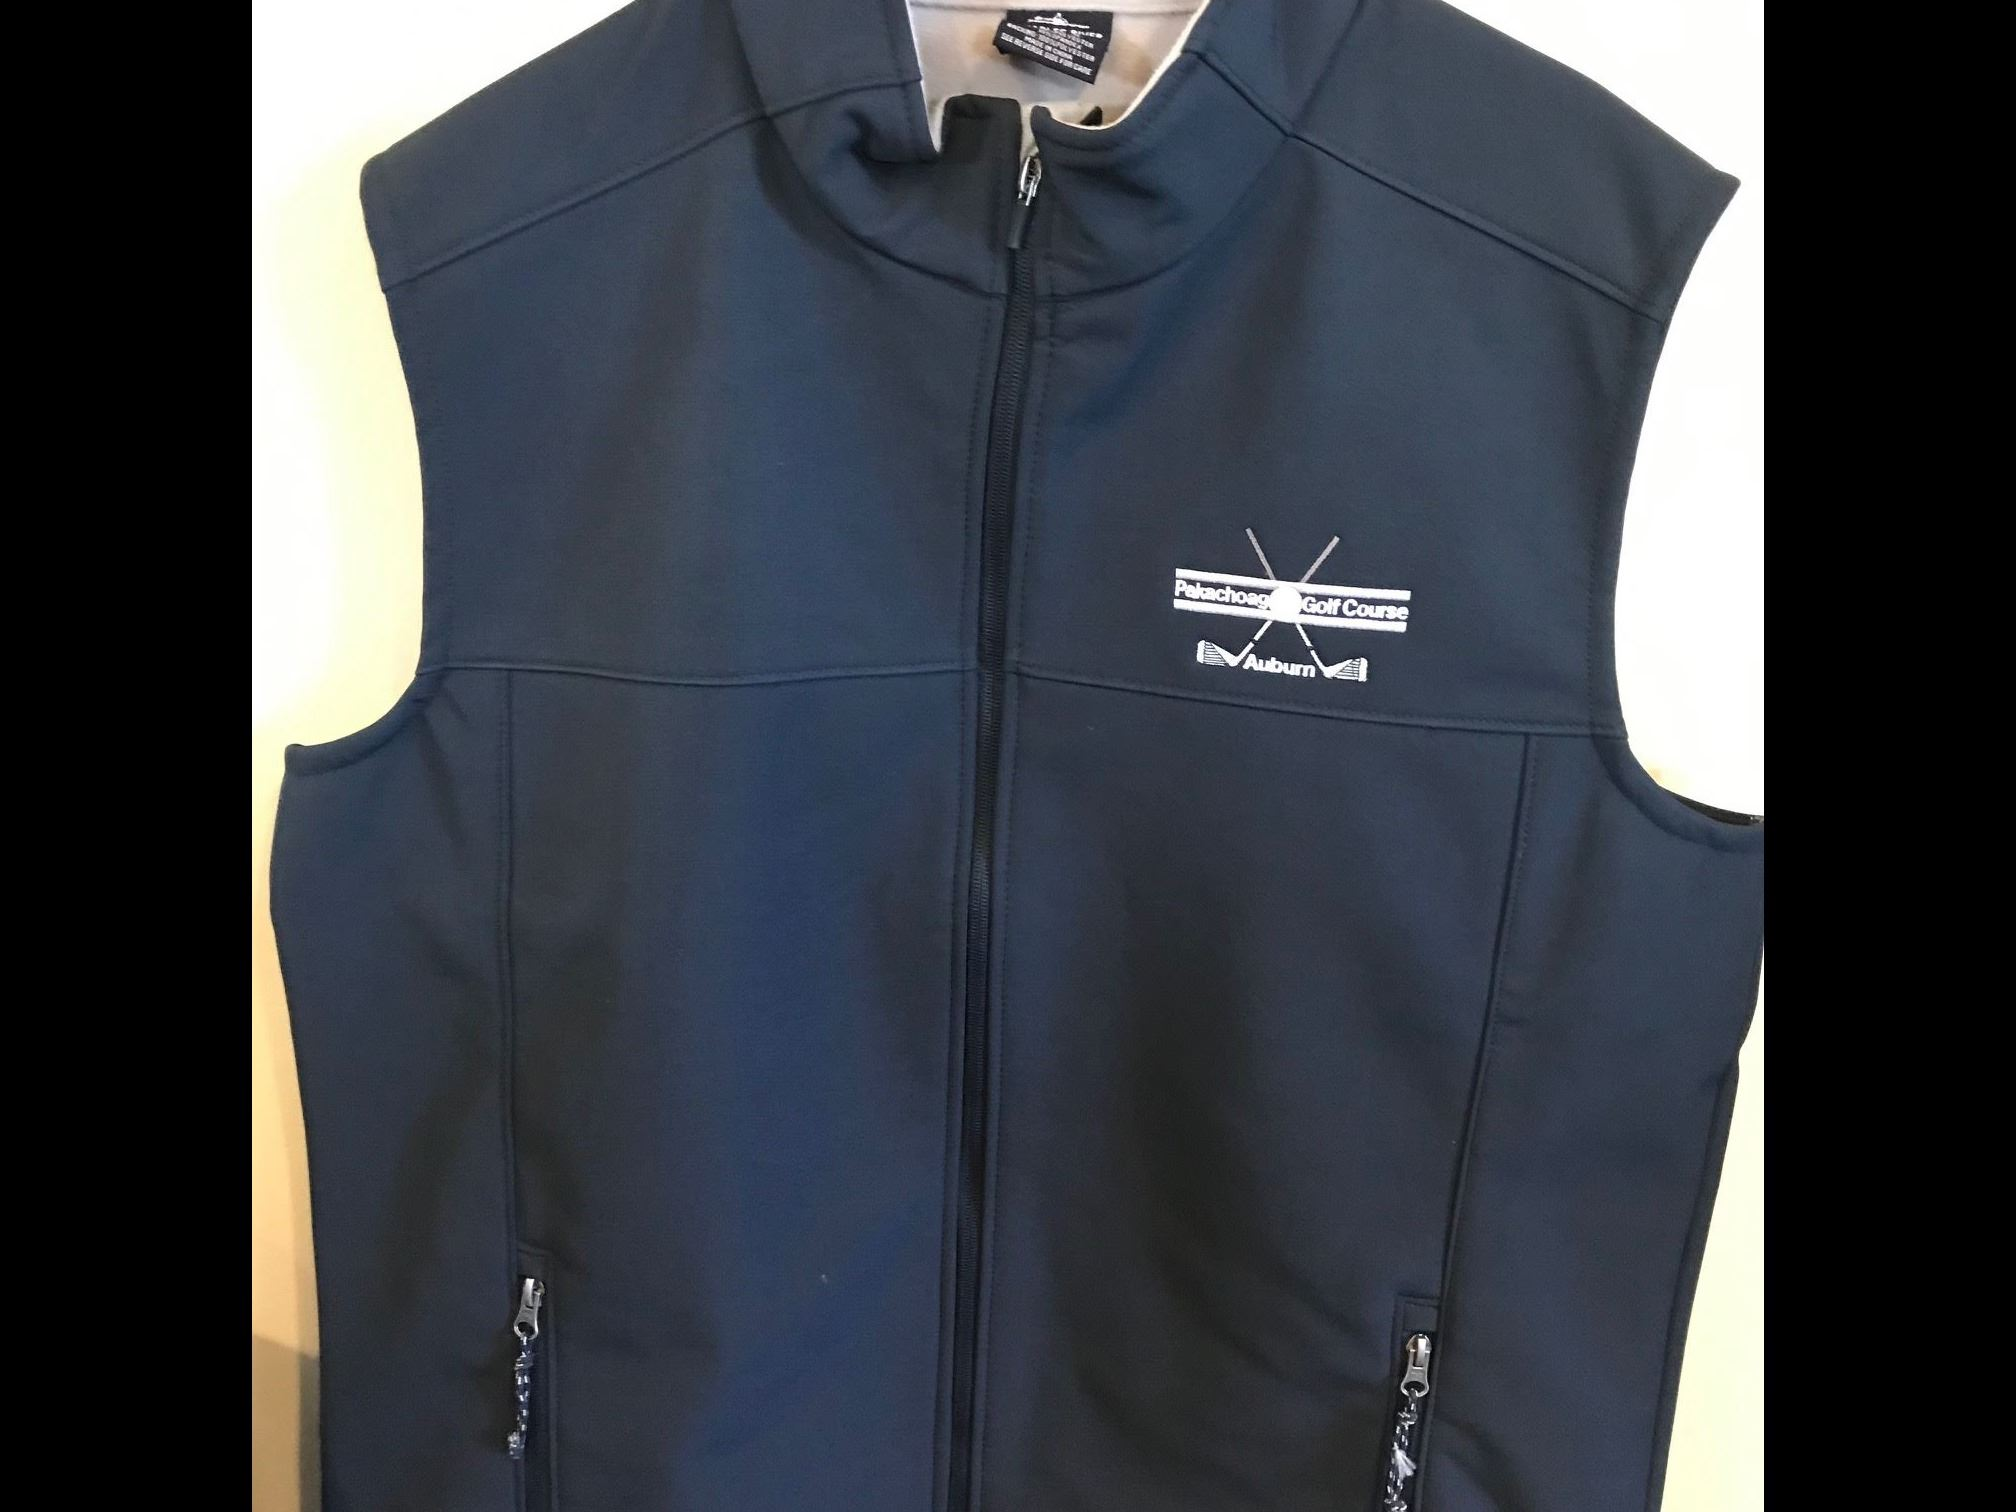 Vest with golf course logo